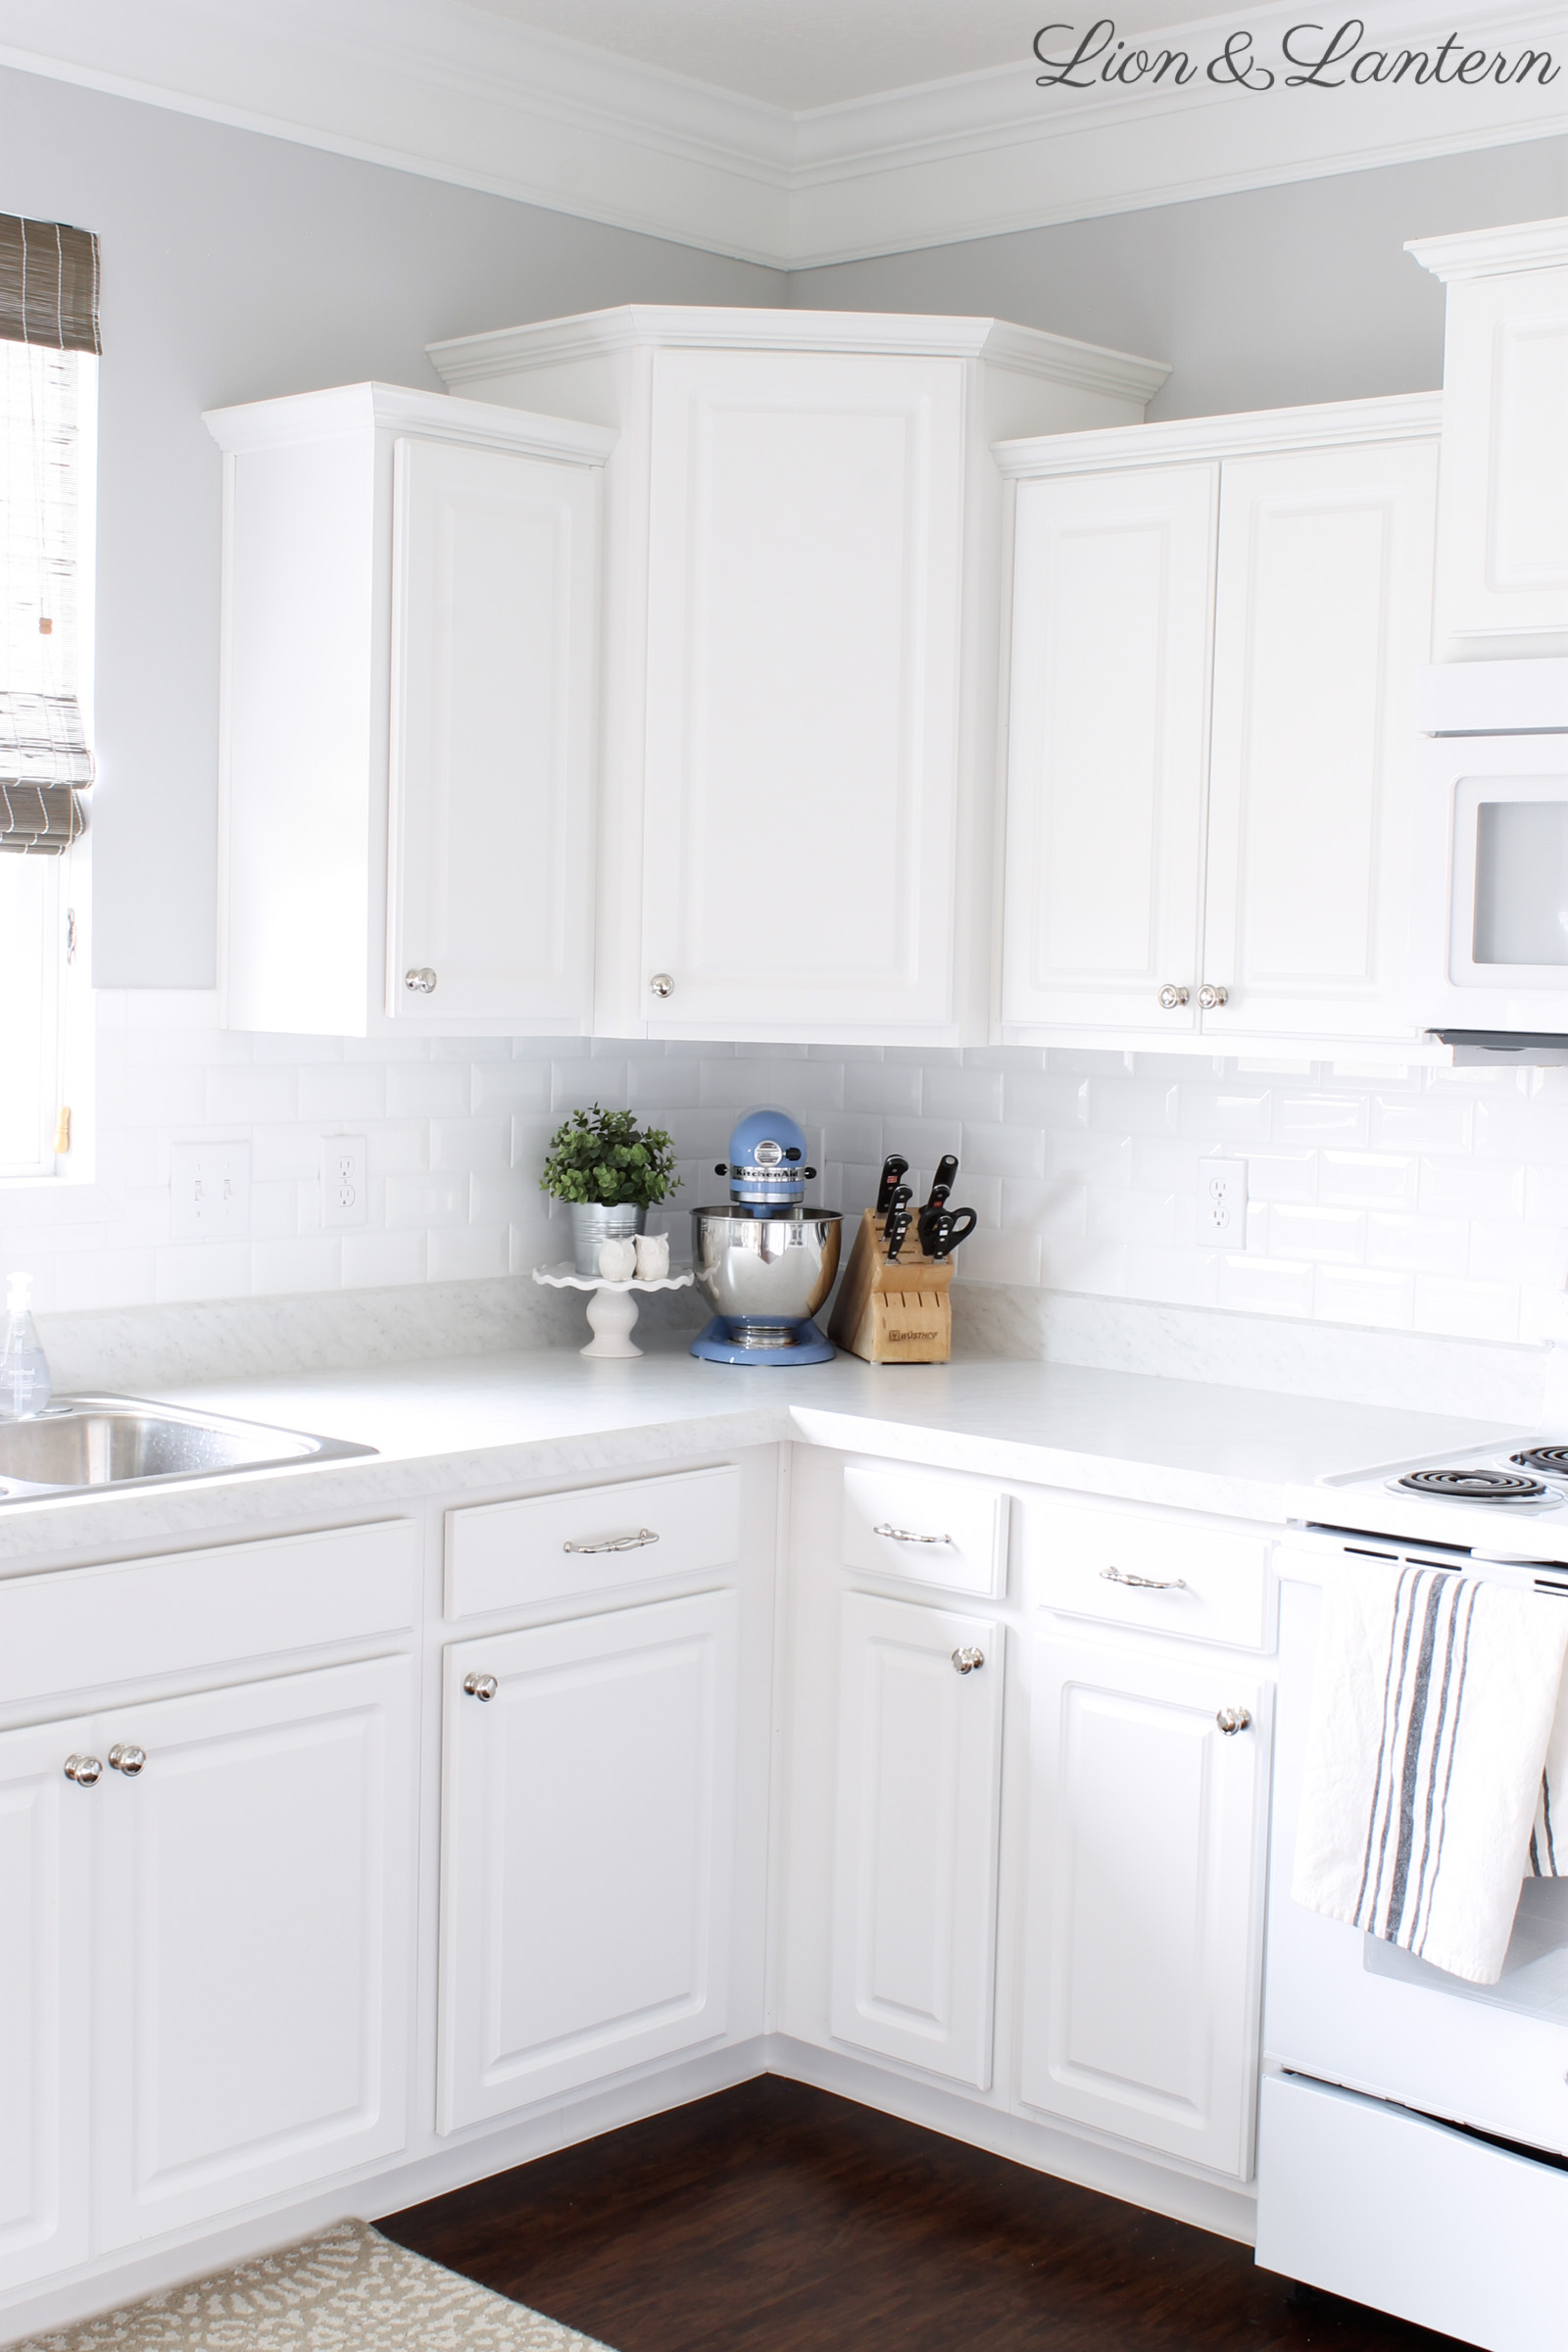 Builder Grade Kitchen Update at LionAndLantern.com | white subway tile, beveled subway tile, transitional kitchen, farmhouse kitchen, traditional kitchen, bright kitchen, white kitchen, DIY kitchen